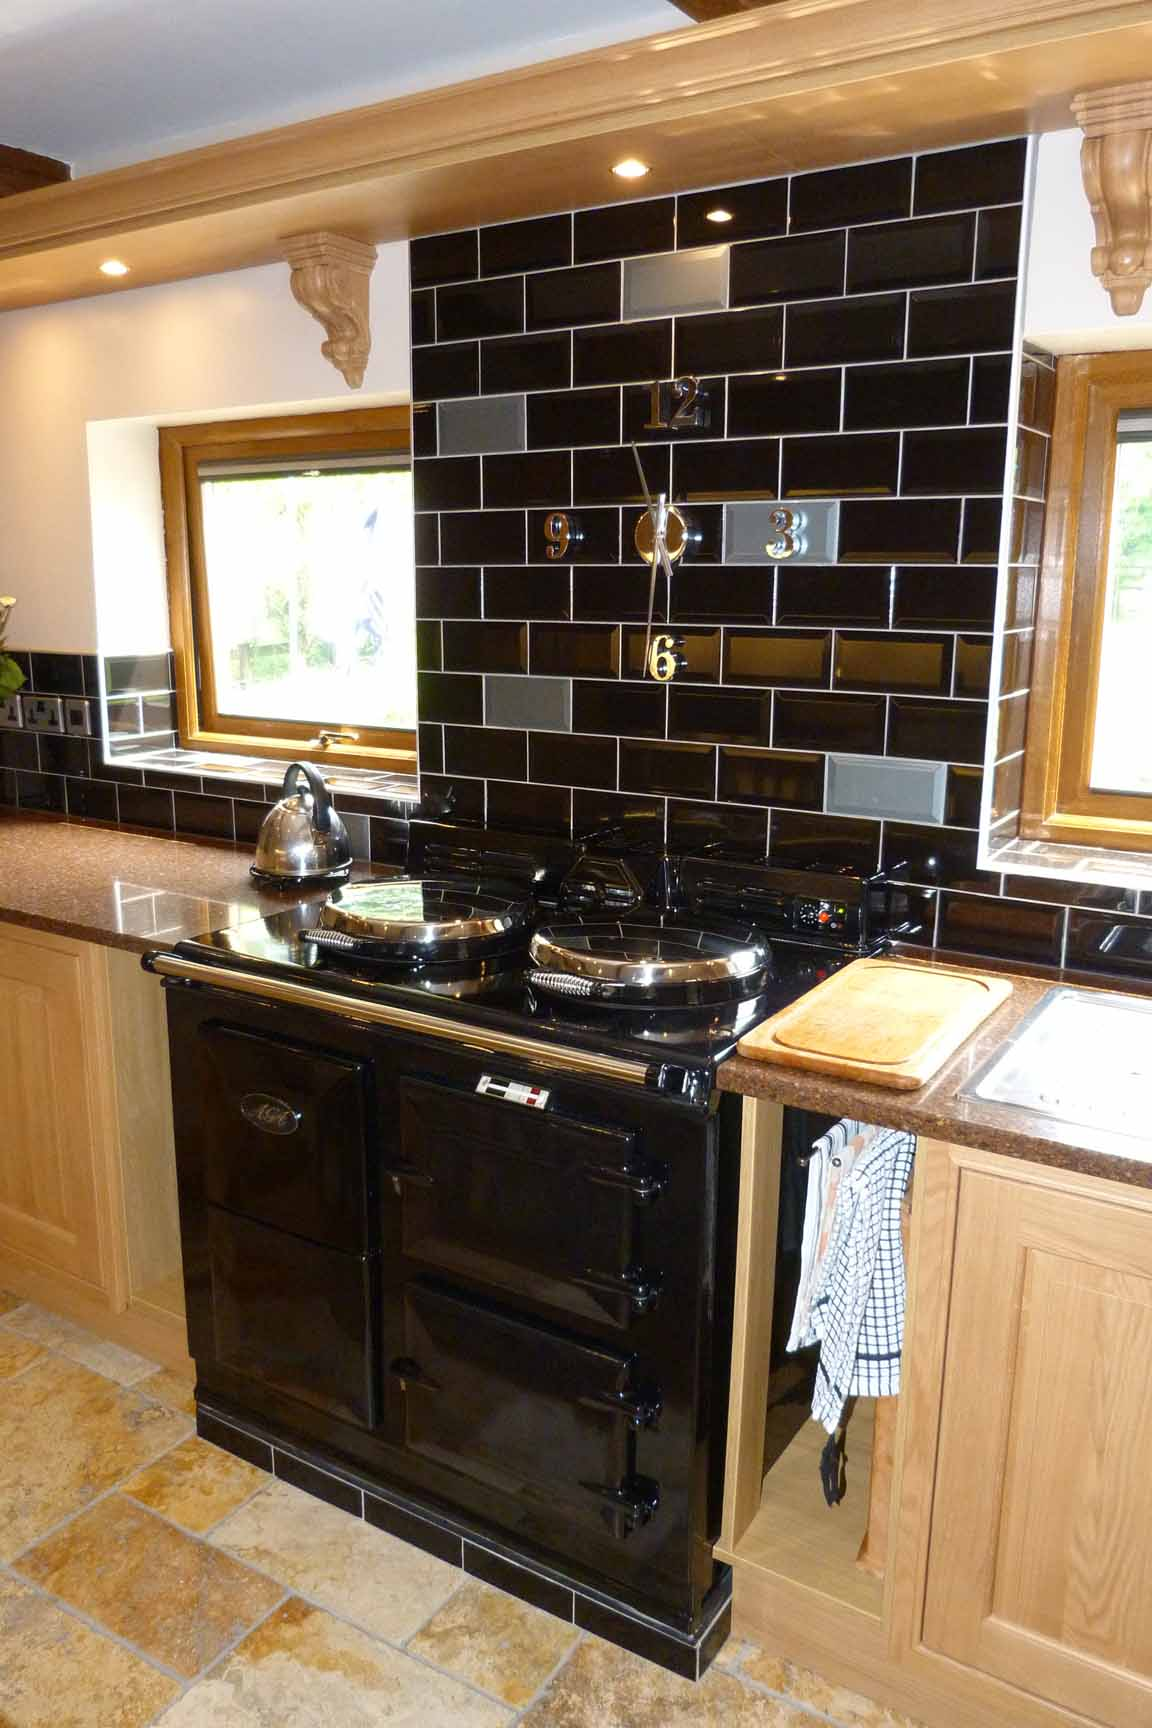 awesome-black-subway-tile-backsplash